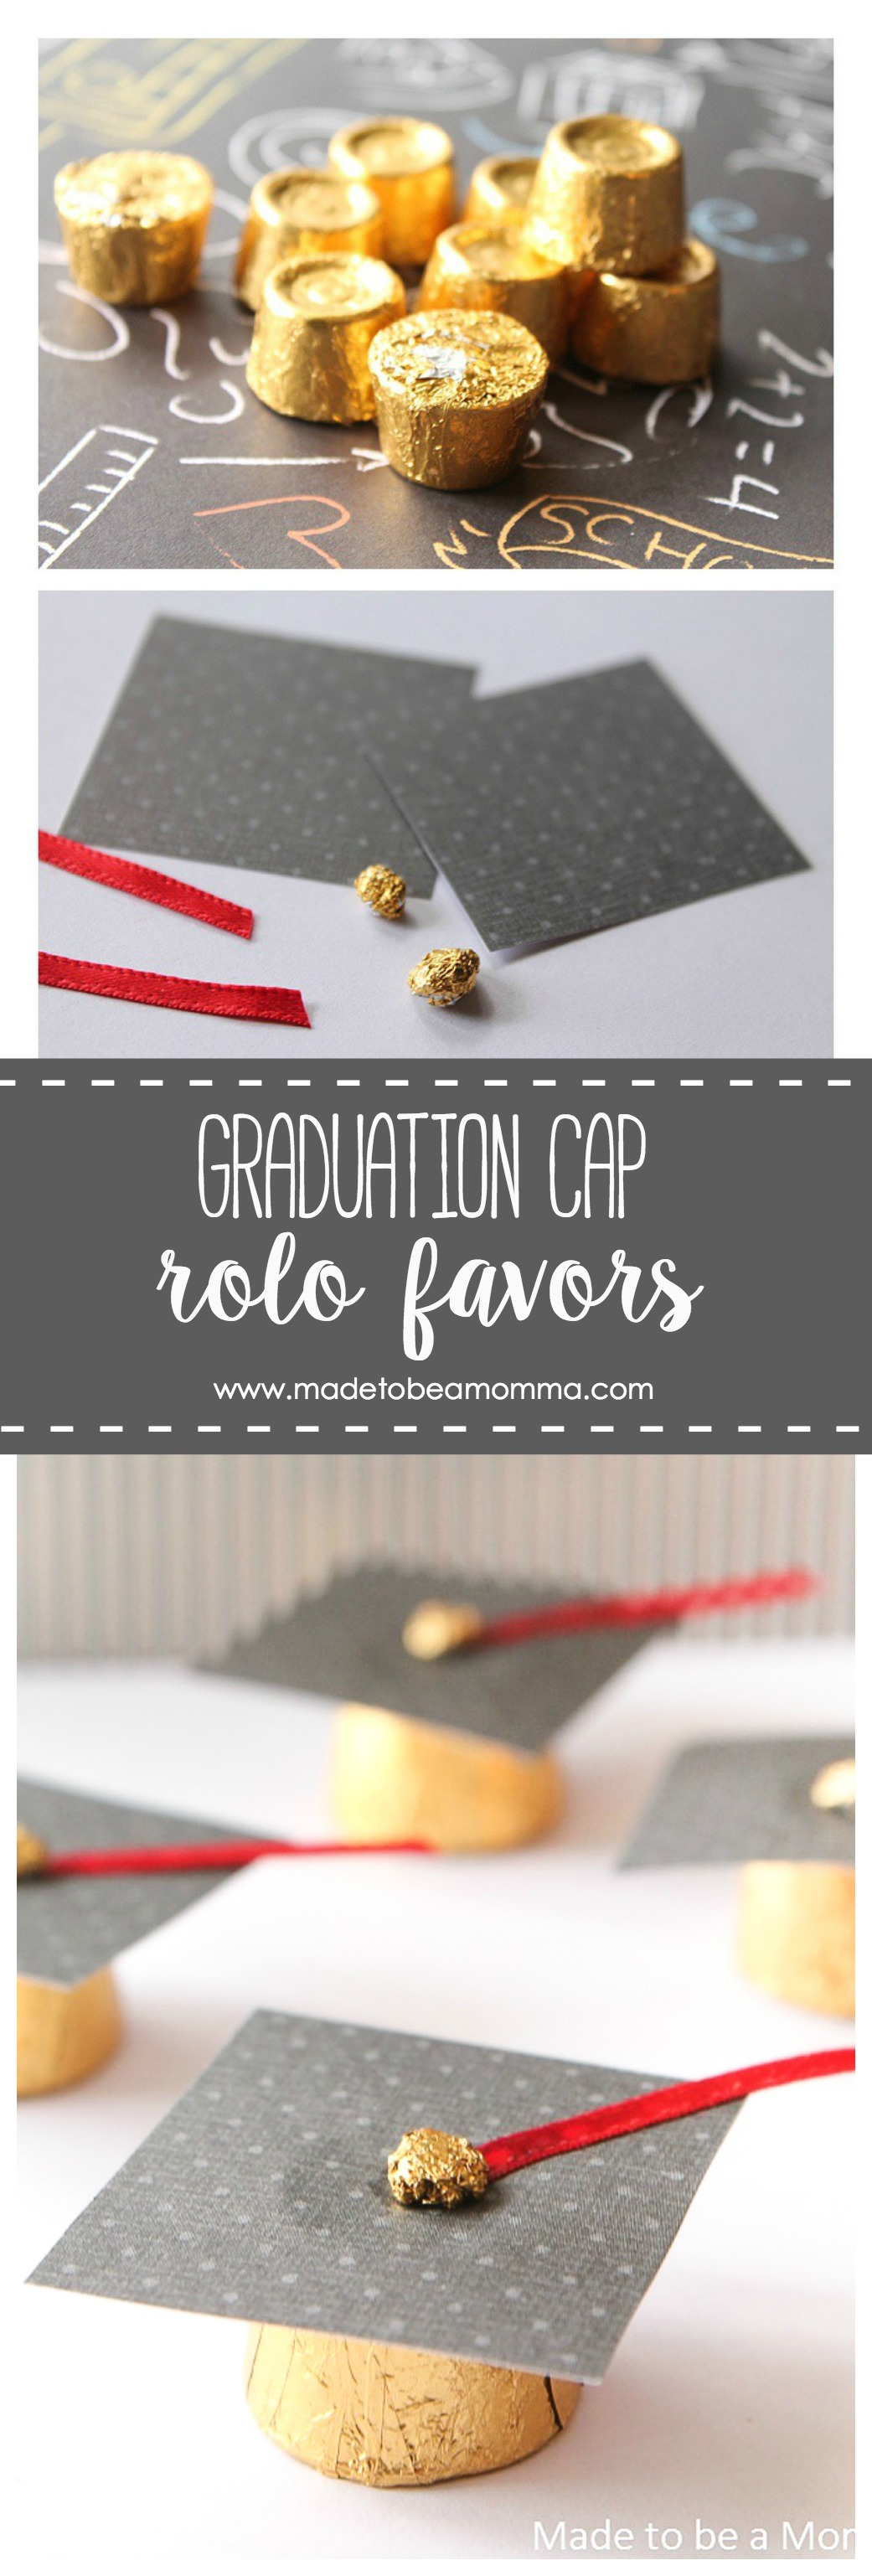 Graduation Cap Rolo Favors A Simple Favor Idea For Your Graduates Party